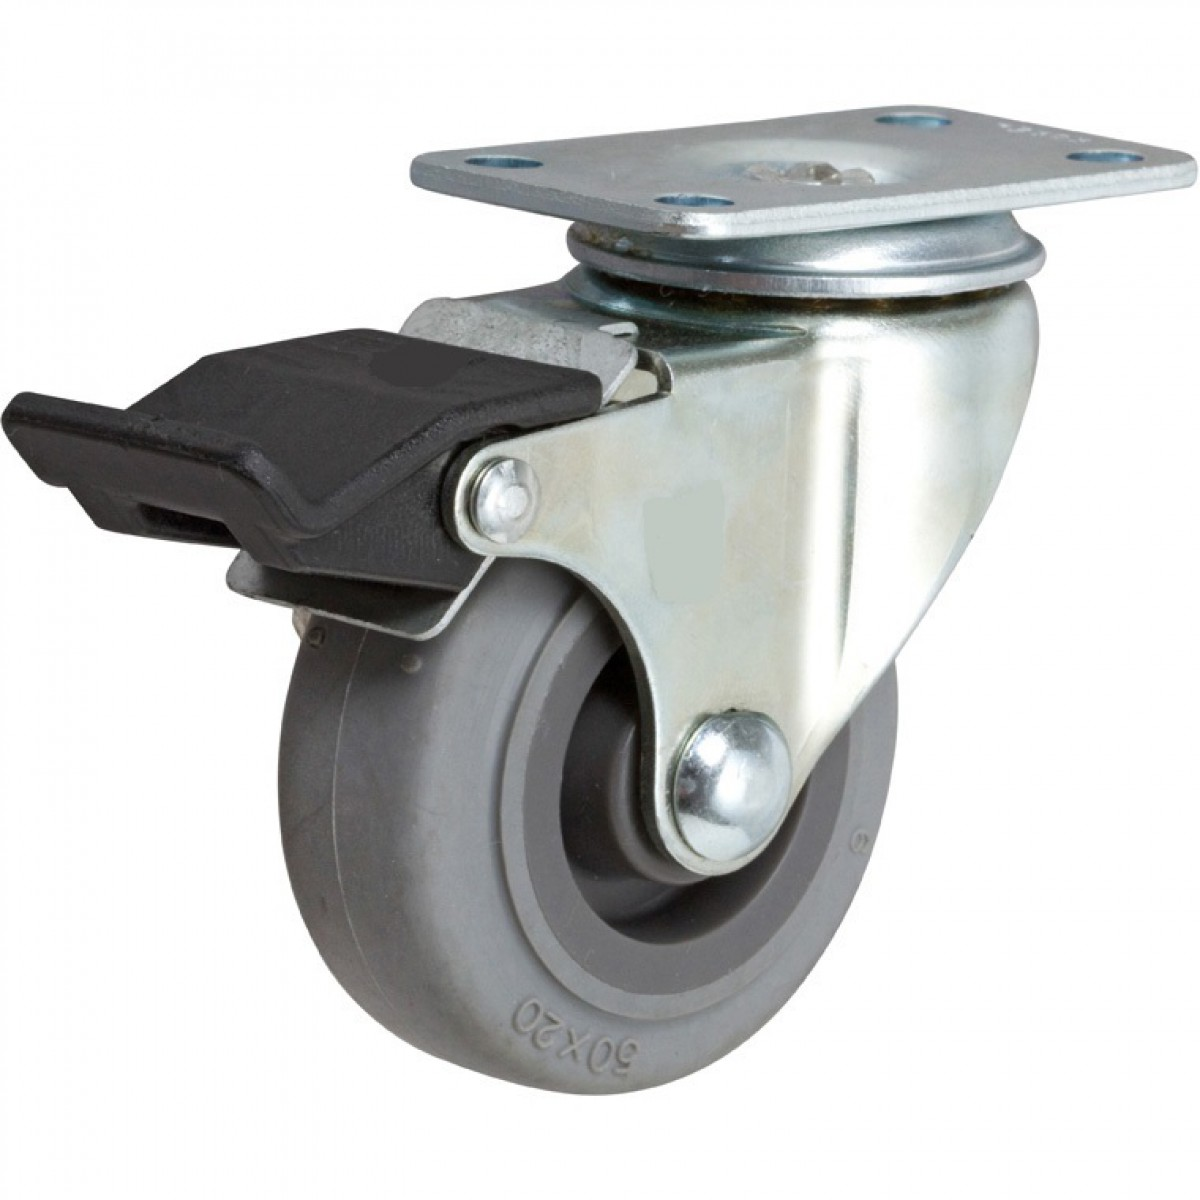 Casters And Wheels Casters And Wheels For Rubbermaid Products